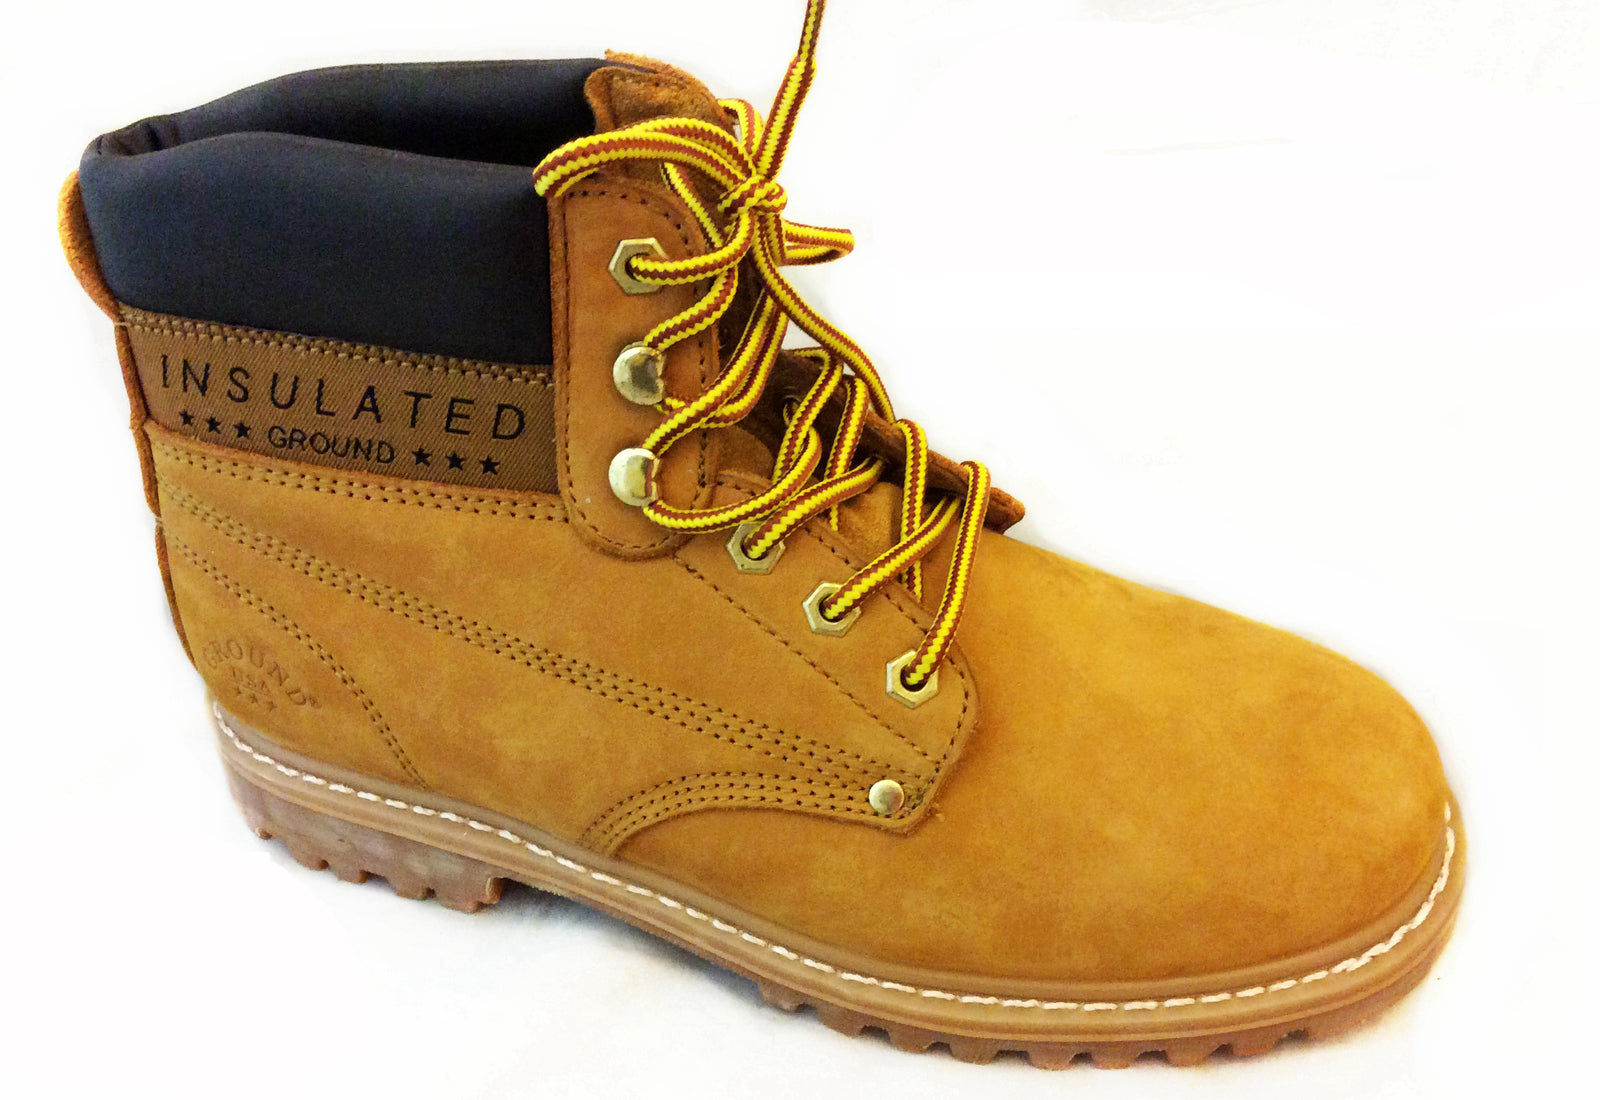 Wholesale Men's Shoes Insulated Work Lace Up Leather Boots NCP61